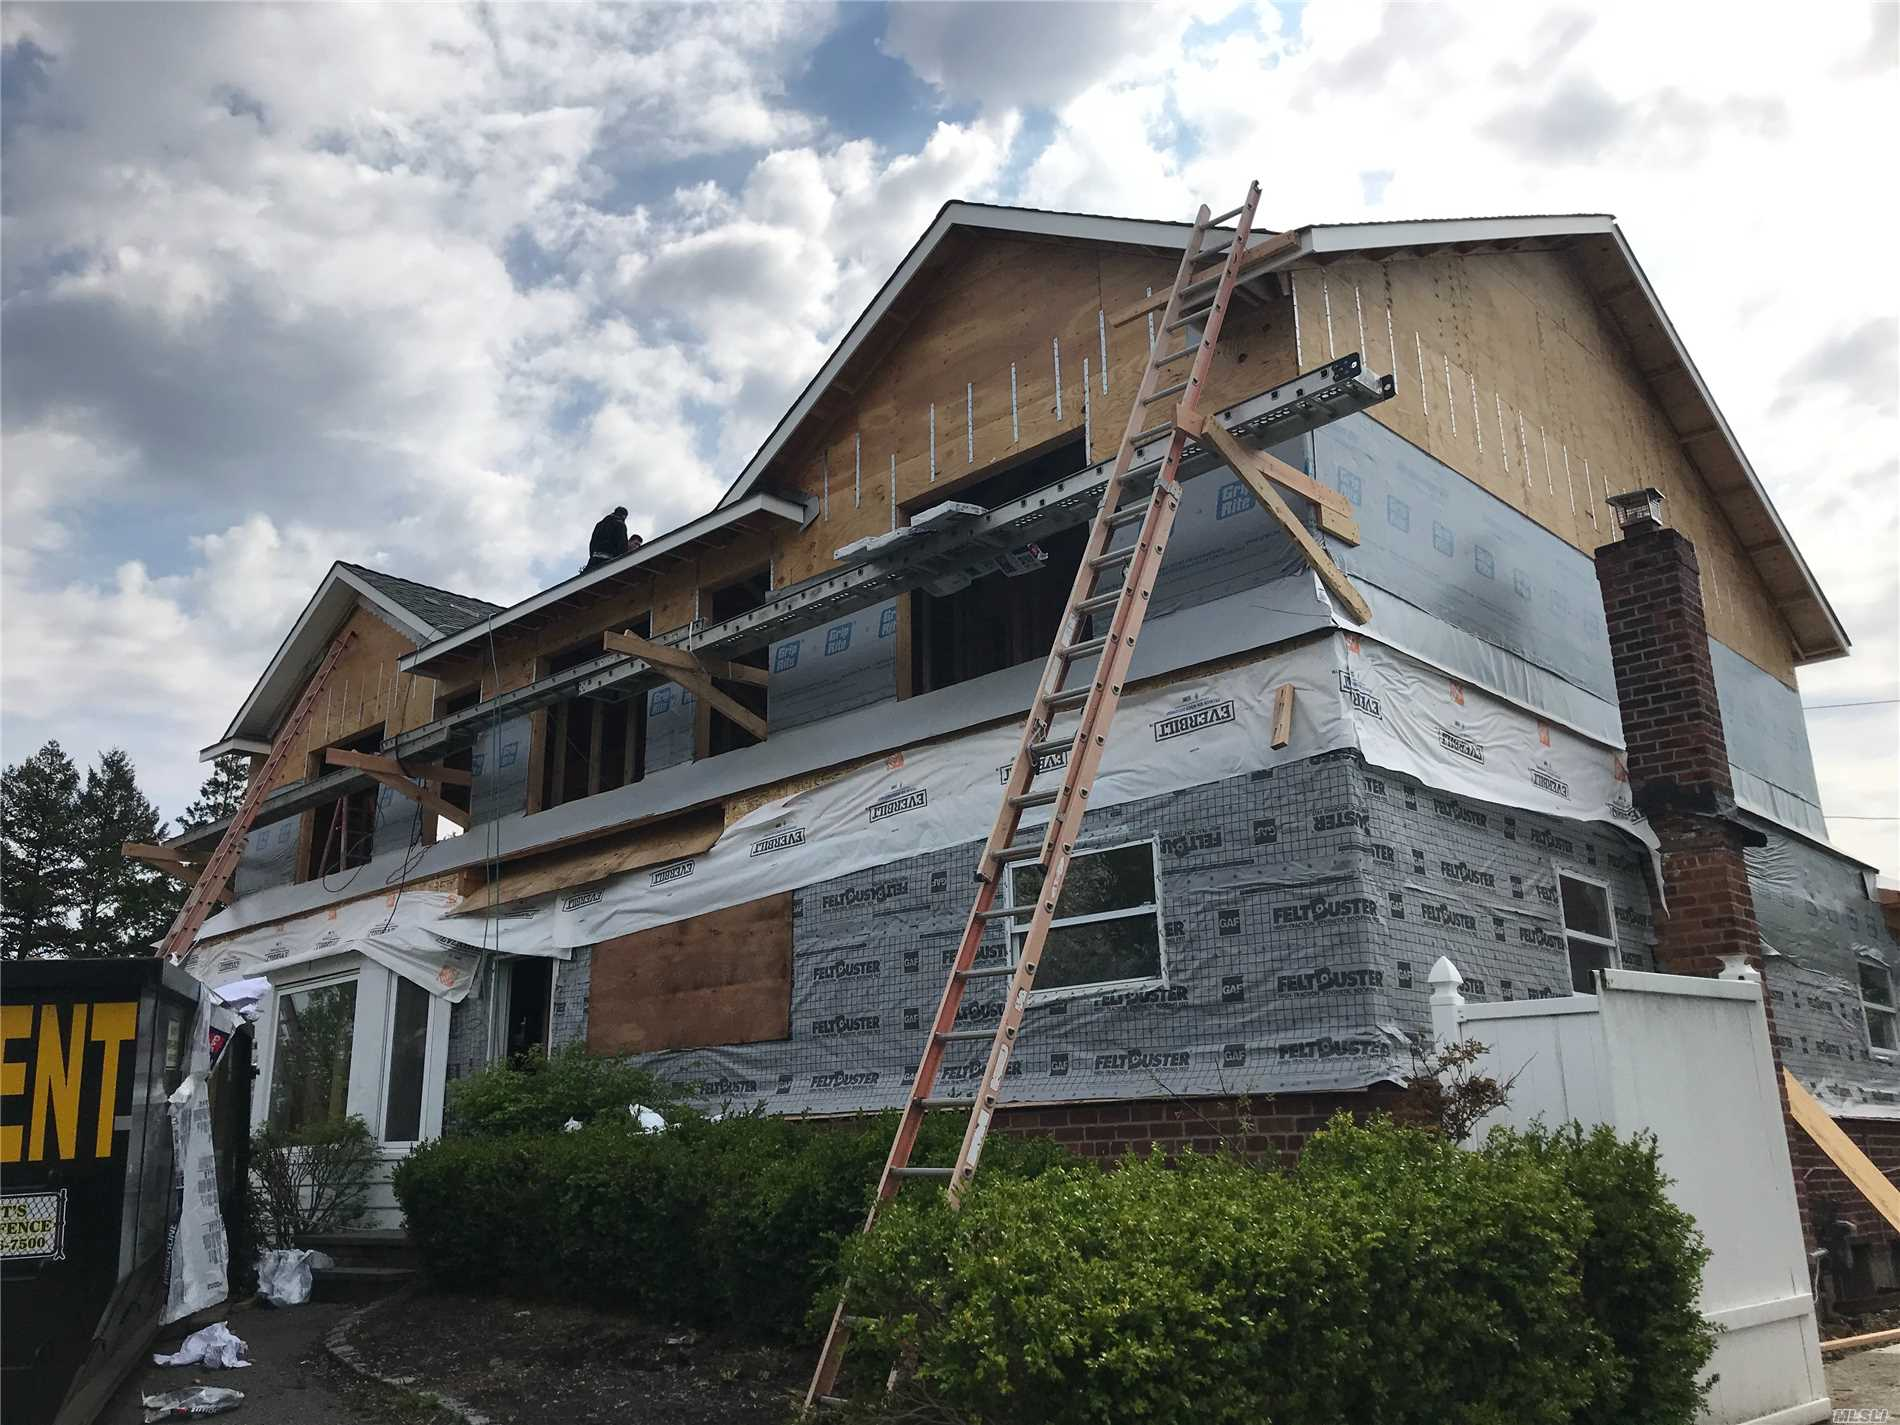 New Construction, work with the Builder and customize now! Completion due 7/2019. East Birchwood (Syosset Schools) 5 Bed, 5.5 Bath Colonial, 3661Sq Ft. (4720 Sq ft. including basement) Taxes Of $17, 481 Are Current & Do Not Reflect Post Construction Tax Assessment. Similar home on block has 23k Tax. Robbins Lane Elementary, Southwood Middle School, Syosset Hs. Open Floor Plan w/Kitchen Center Island(108x60in.) Two bedrooms on first floor. Home Theatre in Basement! Option for pool.